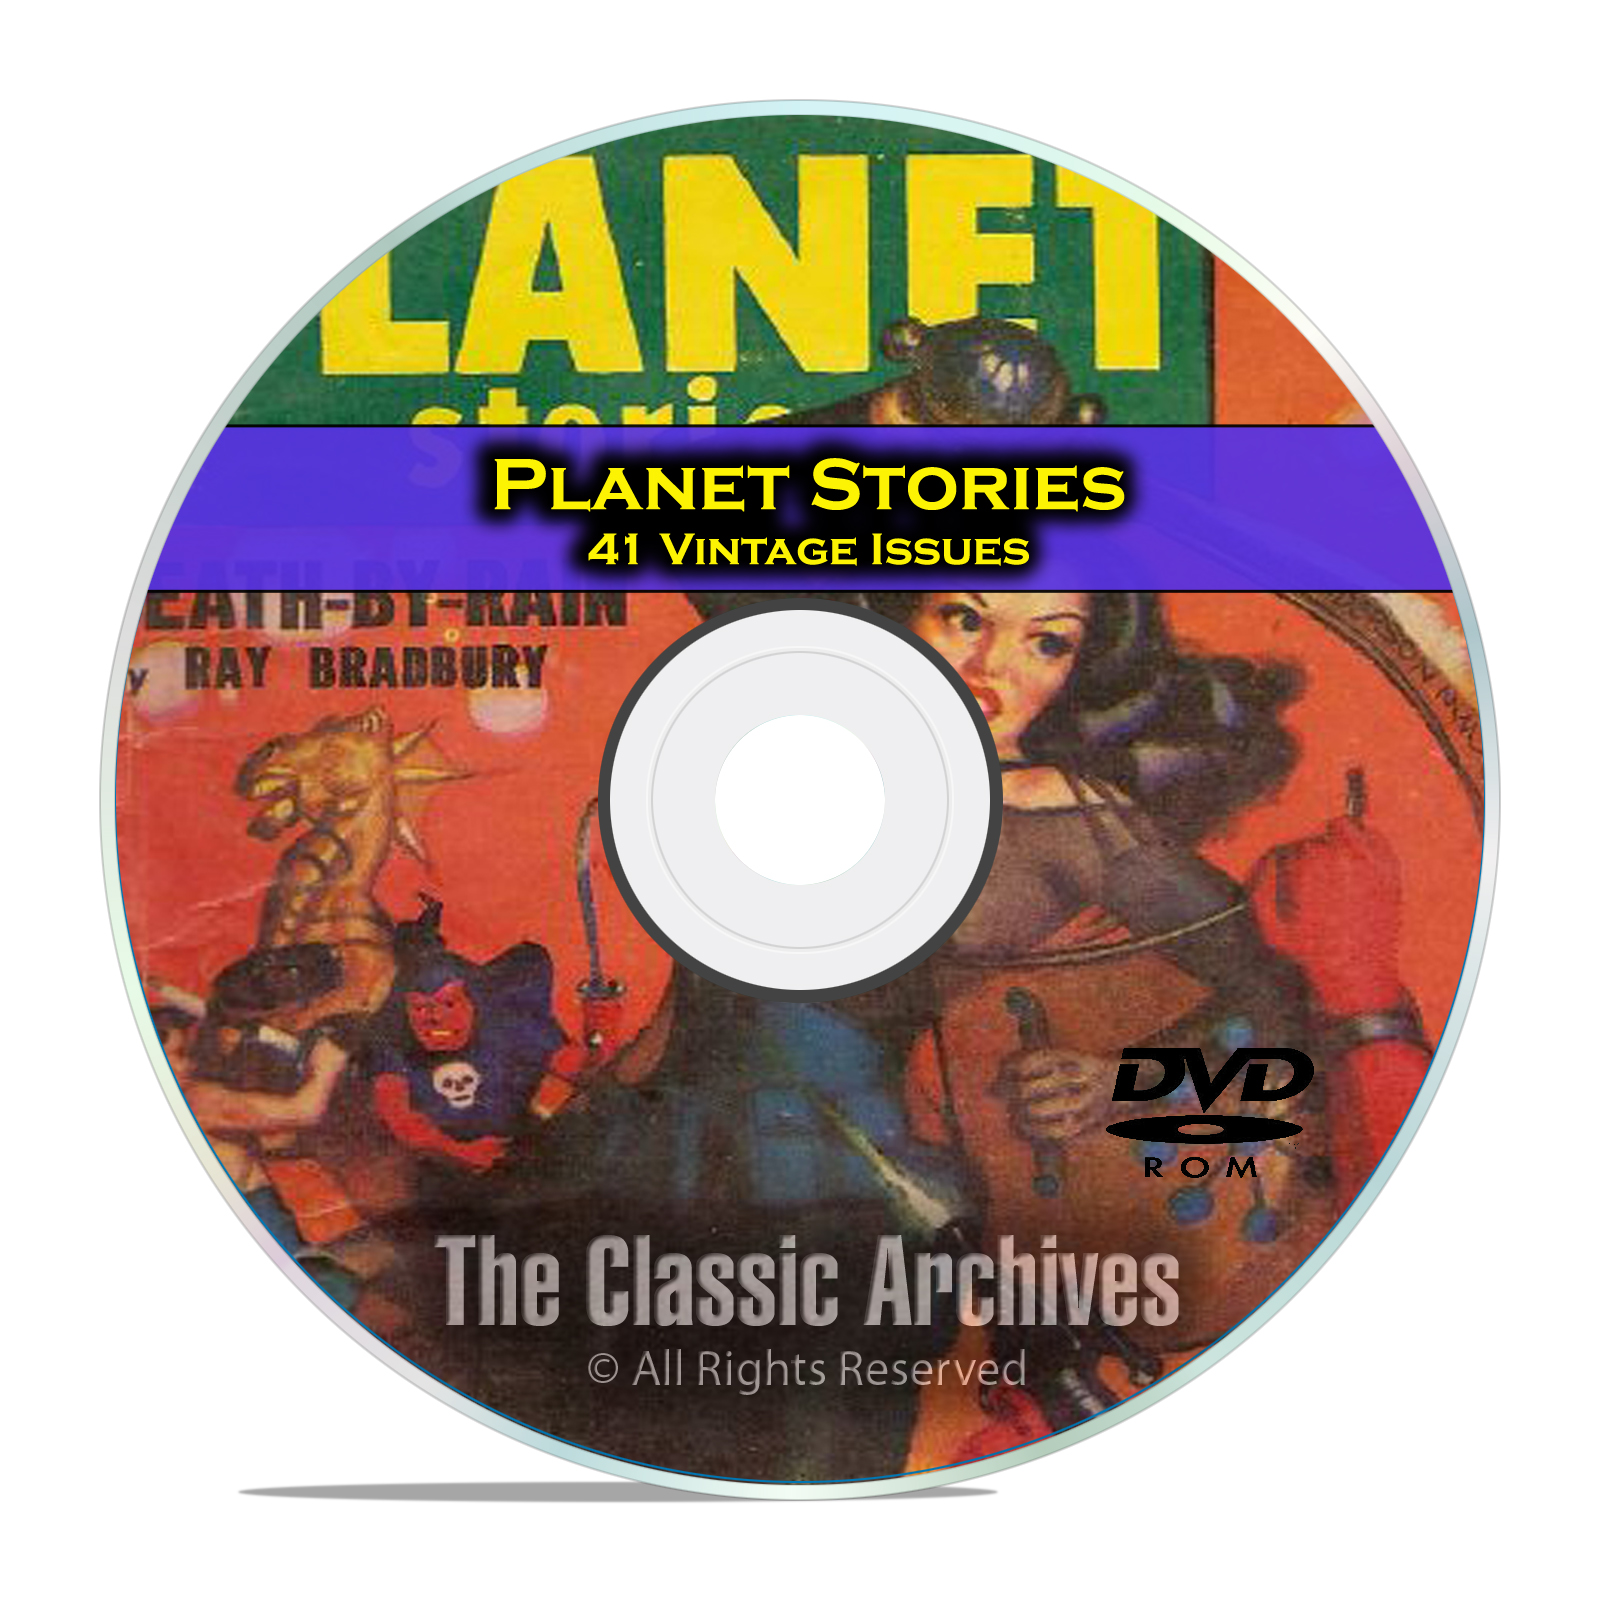 Planet Stories, 41 Vintage Pulp Magazines, Golden Age Science Fiction DVD